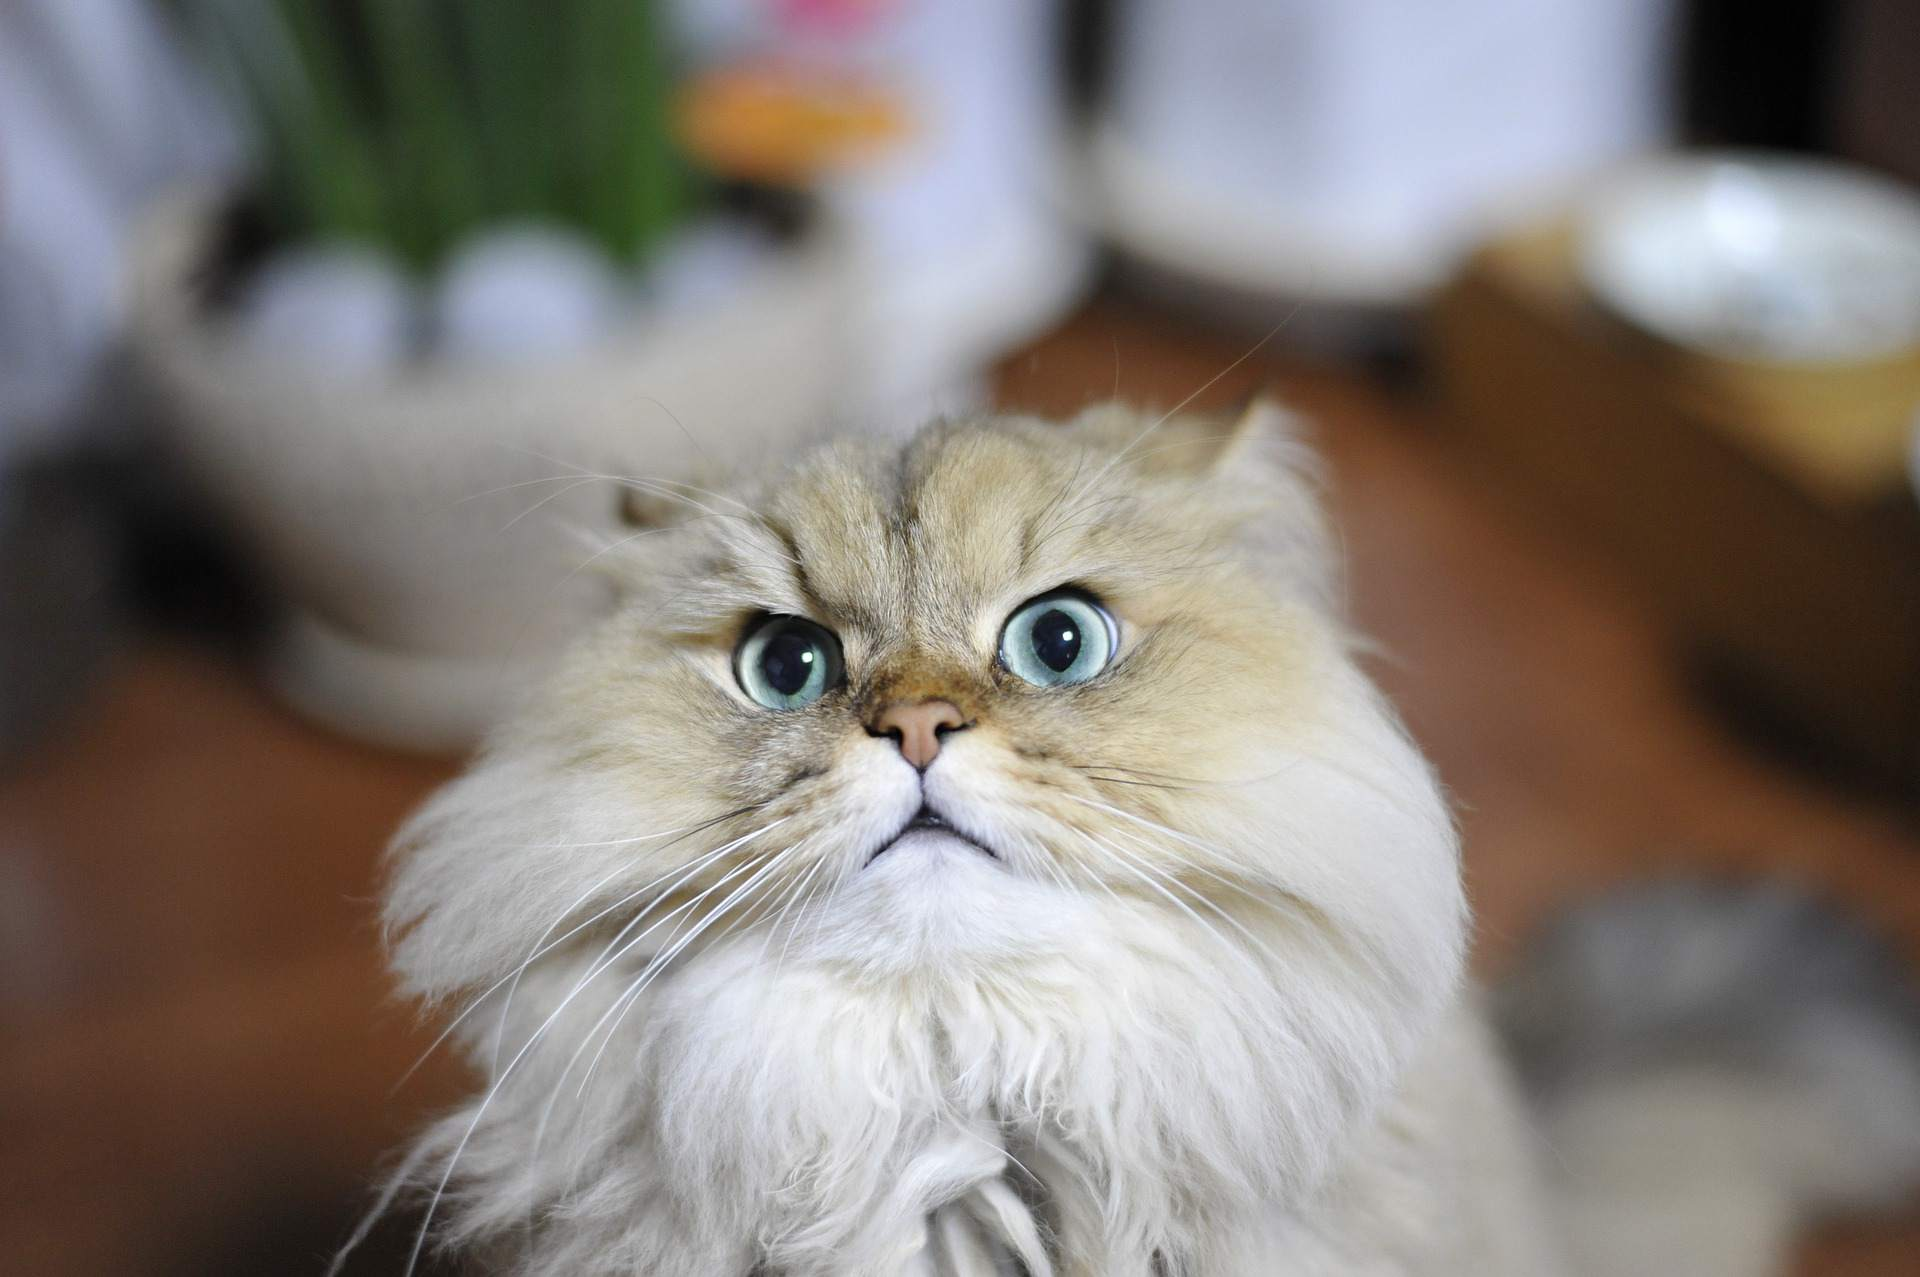 A Persian cat with a concerned look on its face.